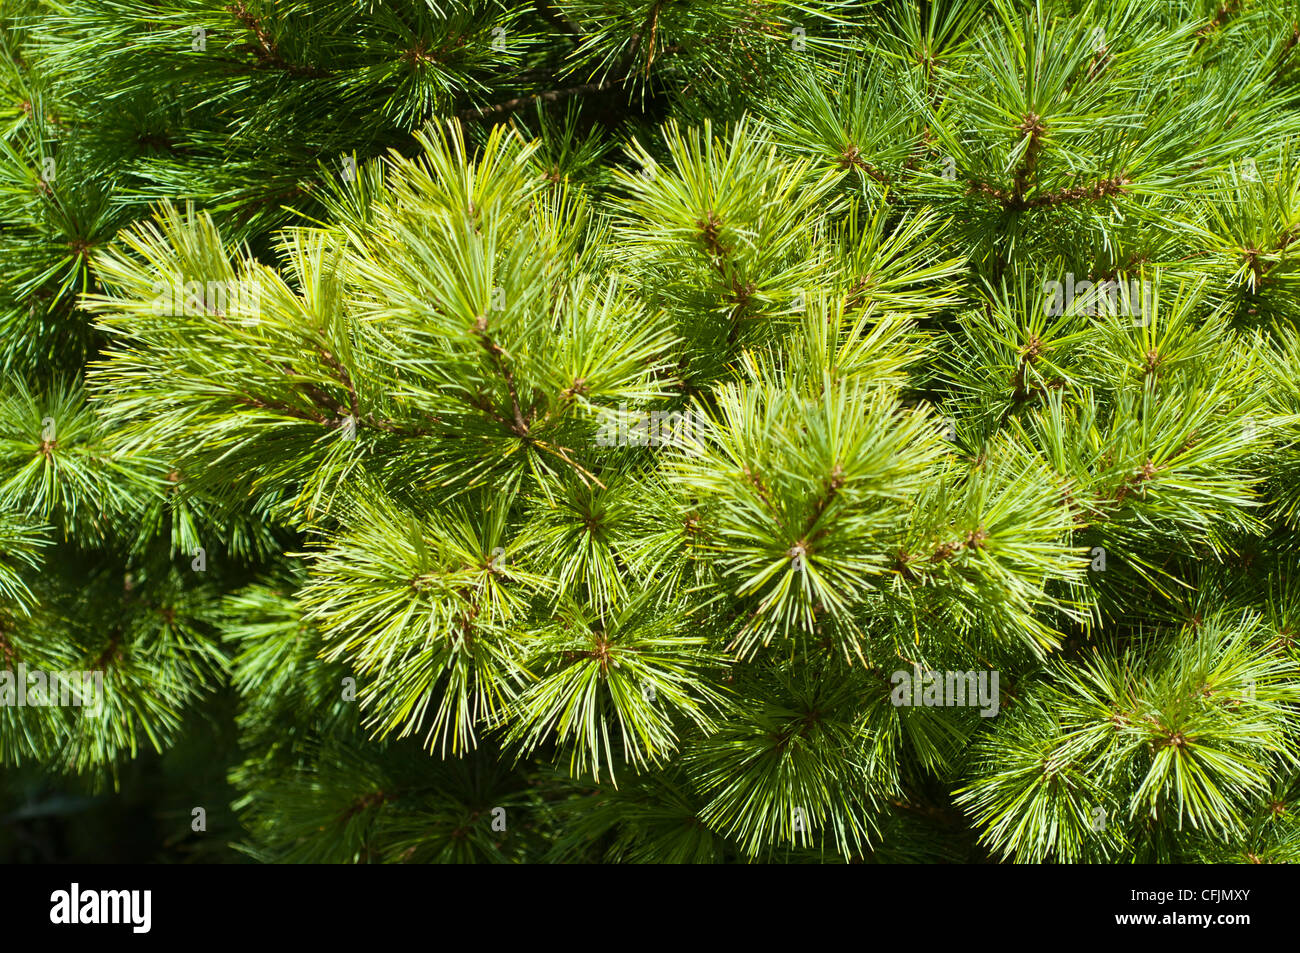 Green conifers close up of Pinus Strobus, Pinaceae, Eastern White Pine, North America - Stock Image